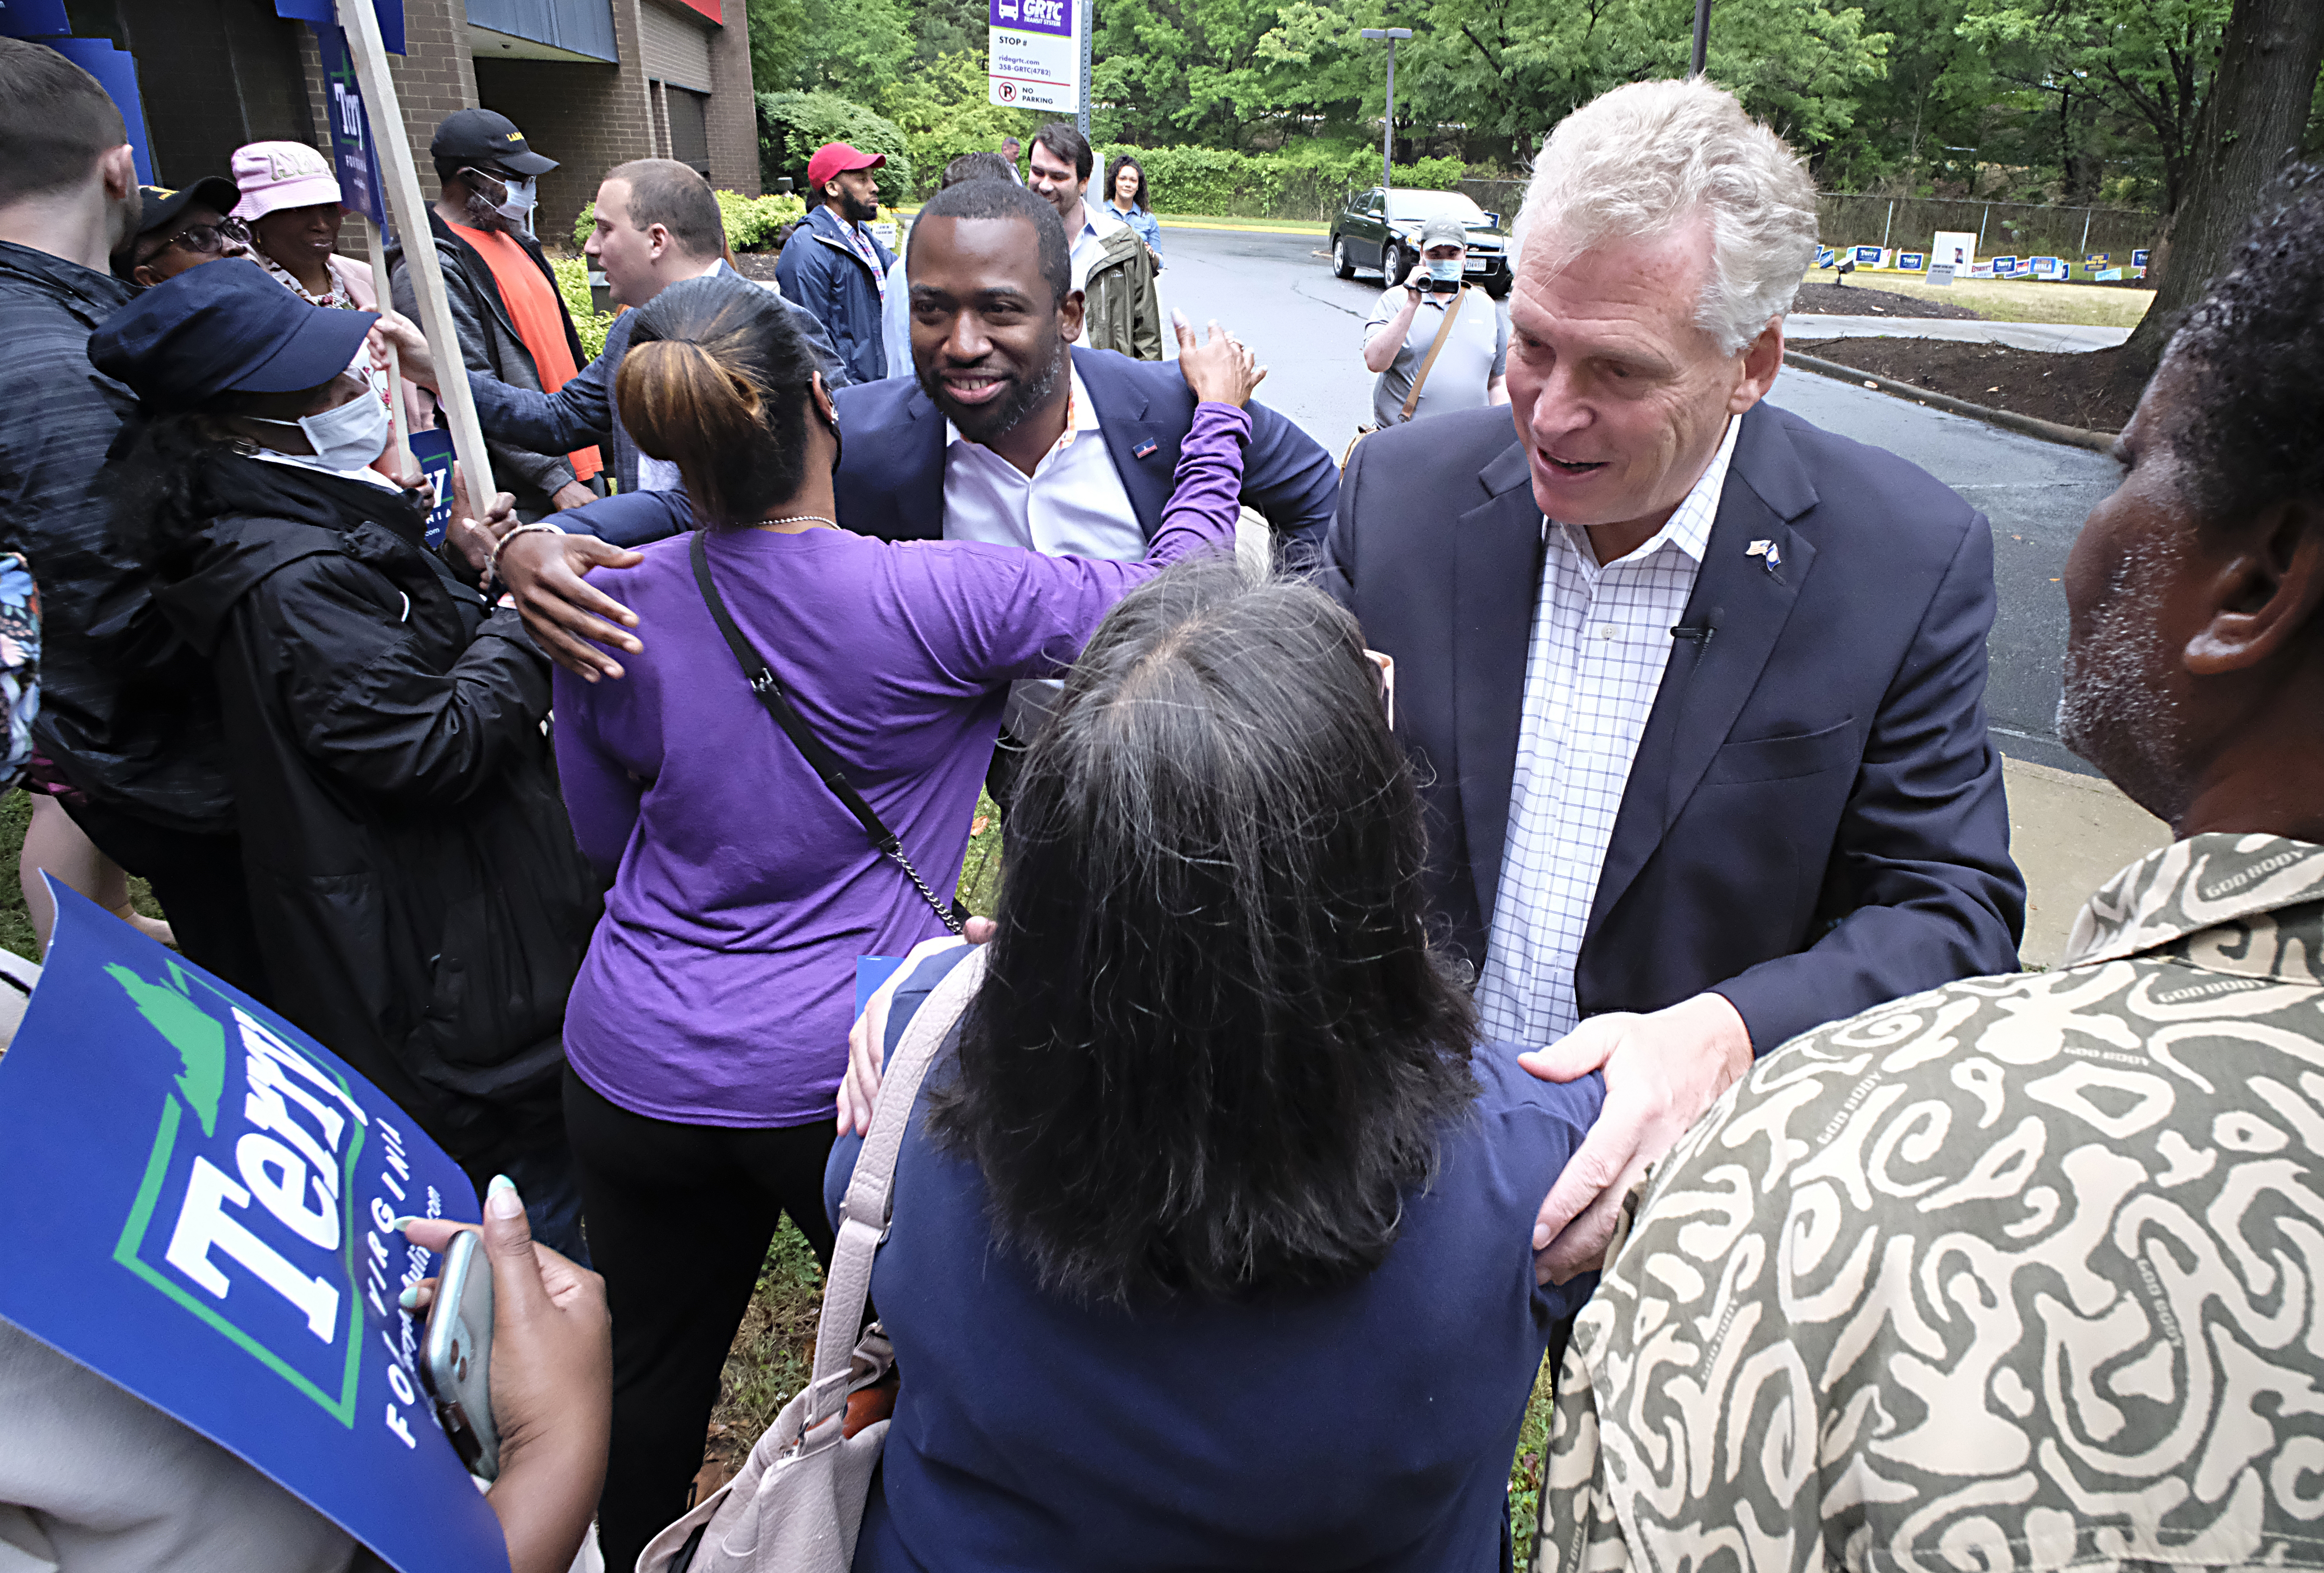 Former Virginia governor Terry McAuliffe, right, and Richmond Mayor Levar Stoney, left, greet McAuliffe supporters during a quick rally outside the Office of the General Registrar, City of Richmond, in Richmond, Va. Friday, June 4, 2021. McAuliffe is running for the gubernatorial nomination in the upcoming Democratic Primary.